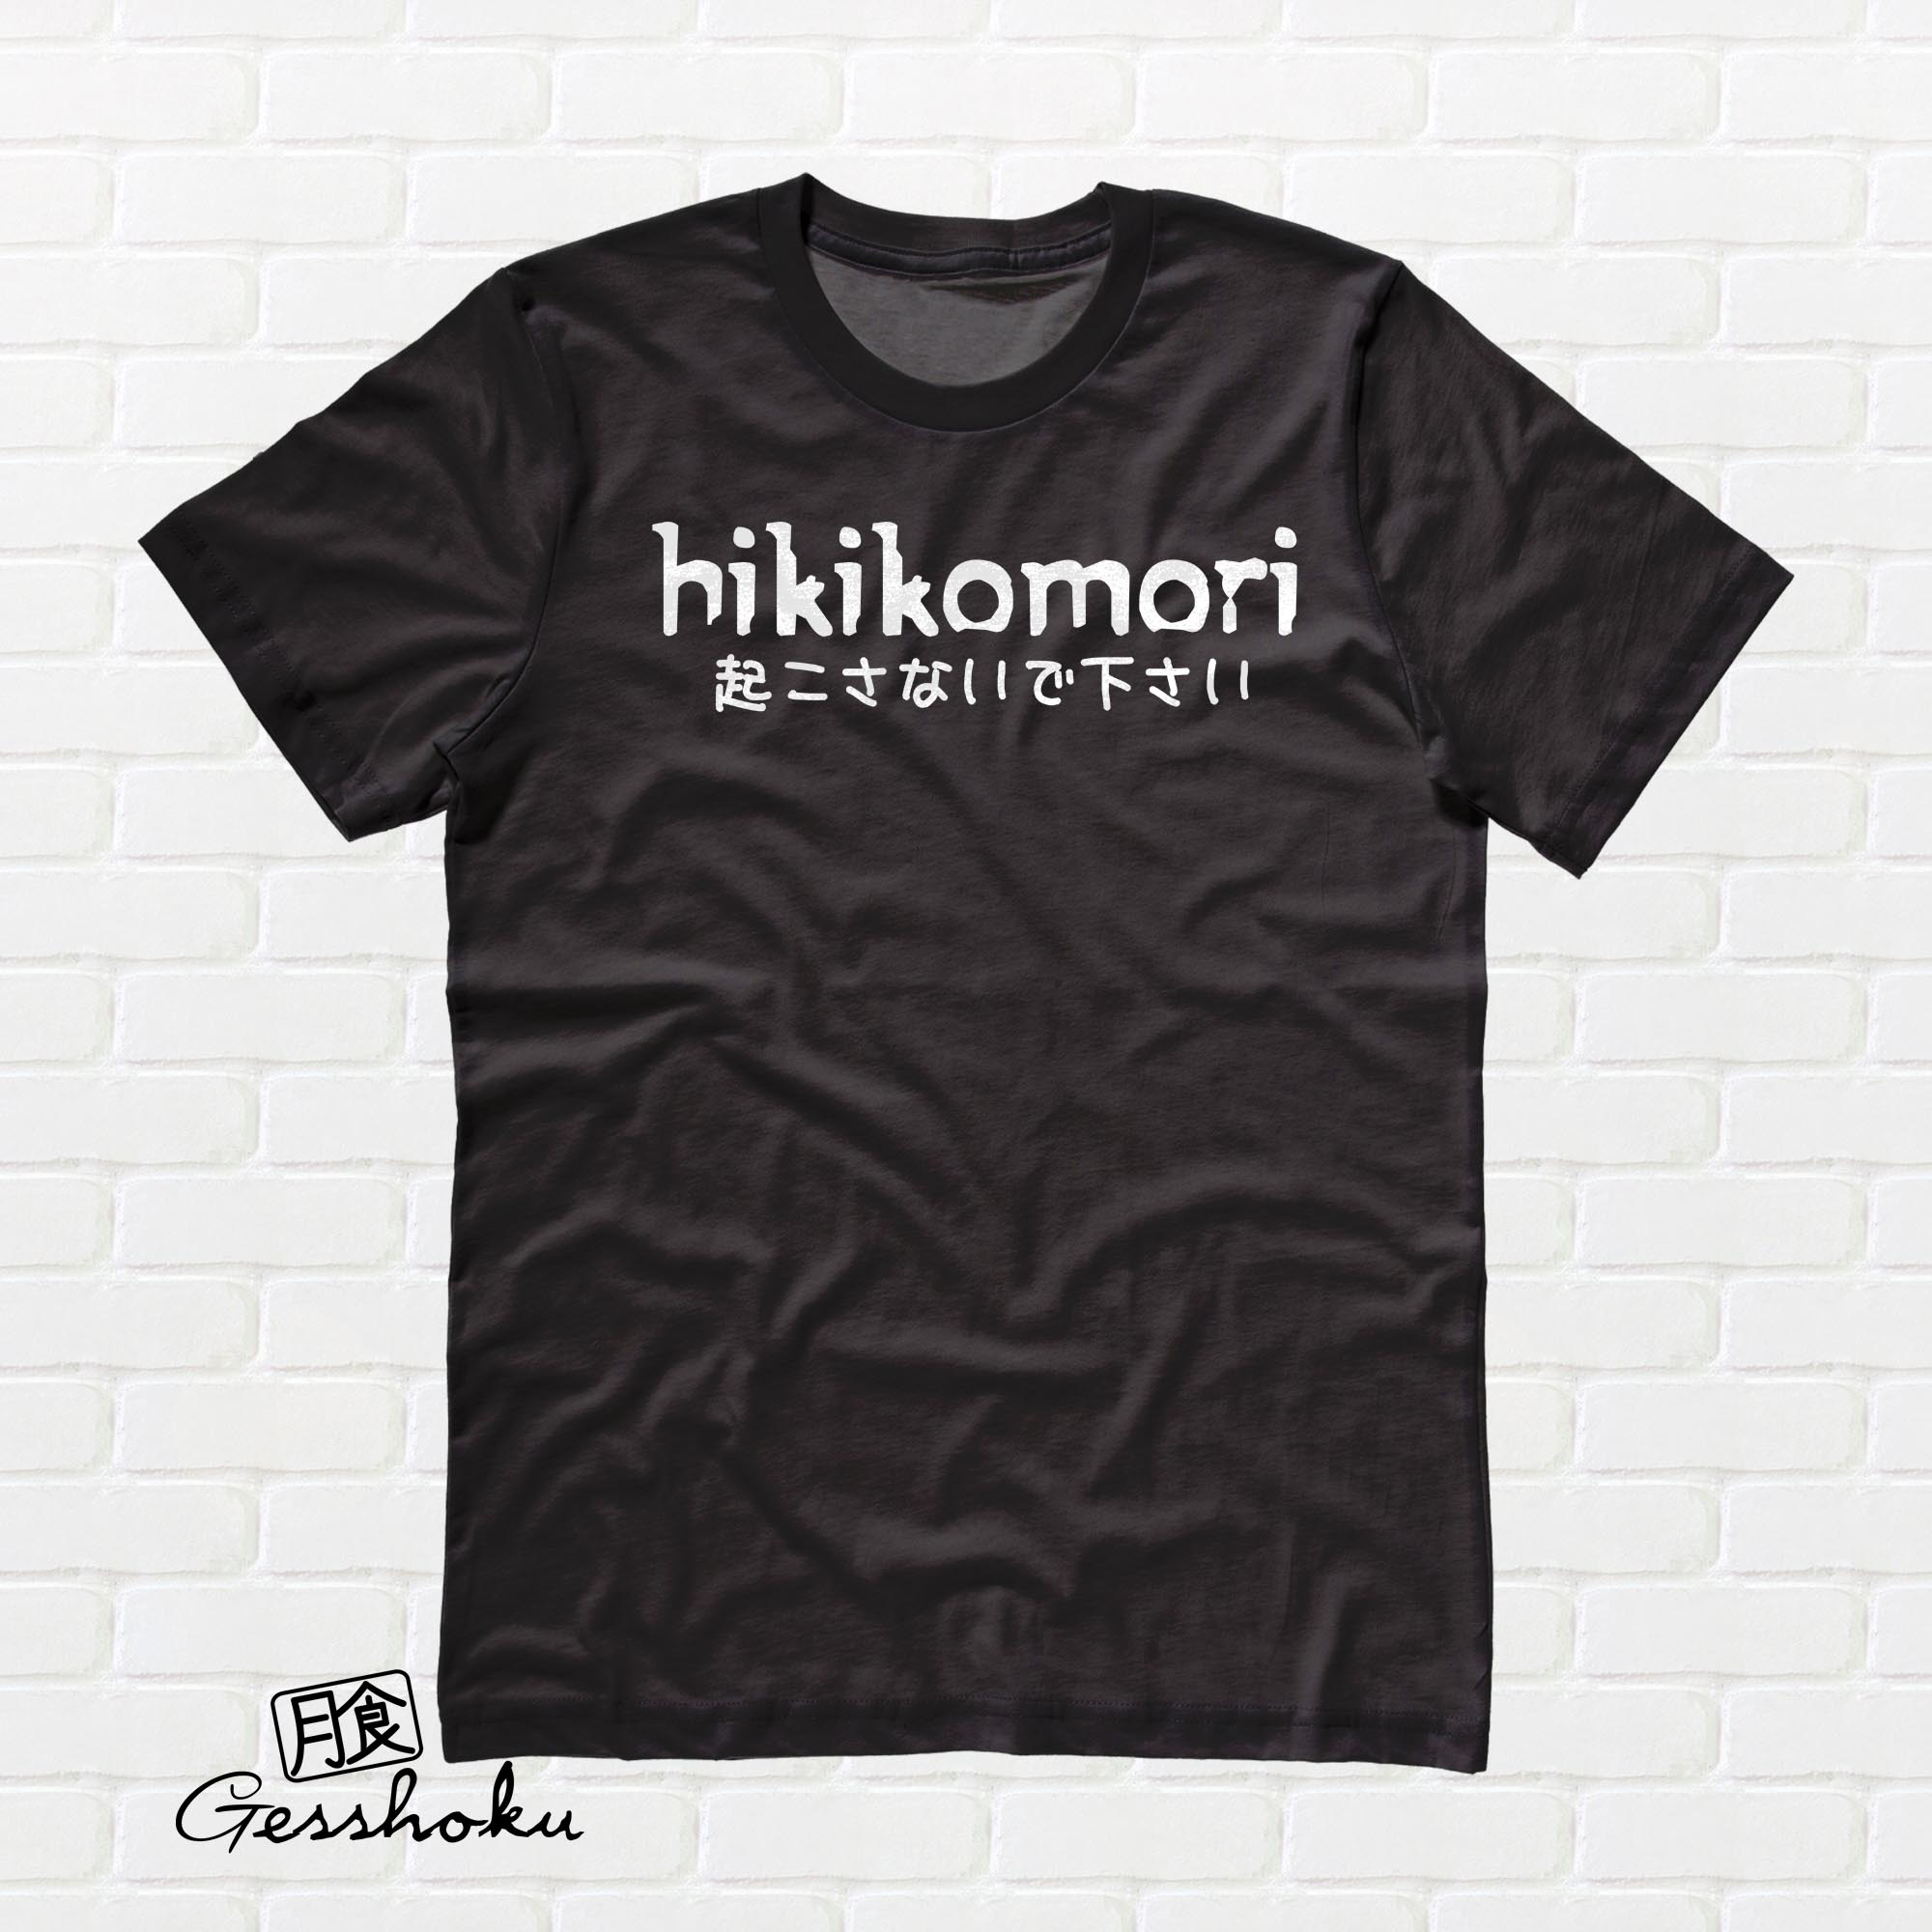 Hikikomori T-shirt - Black